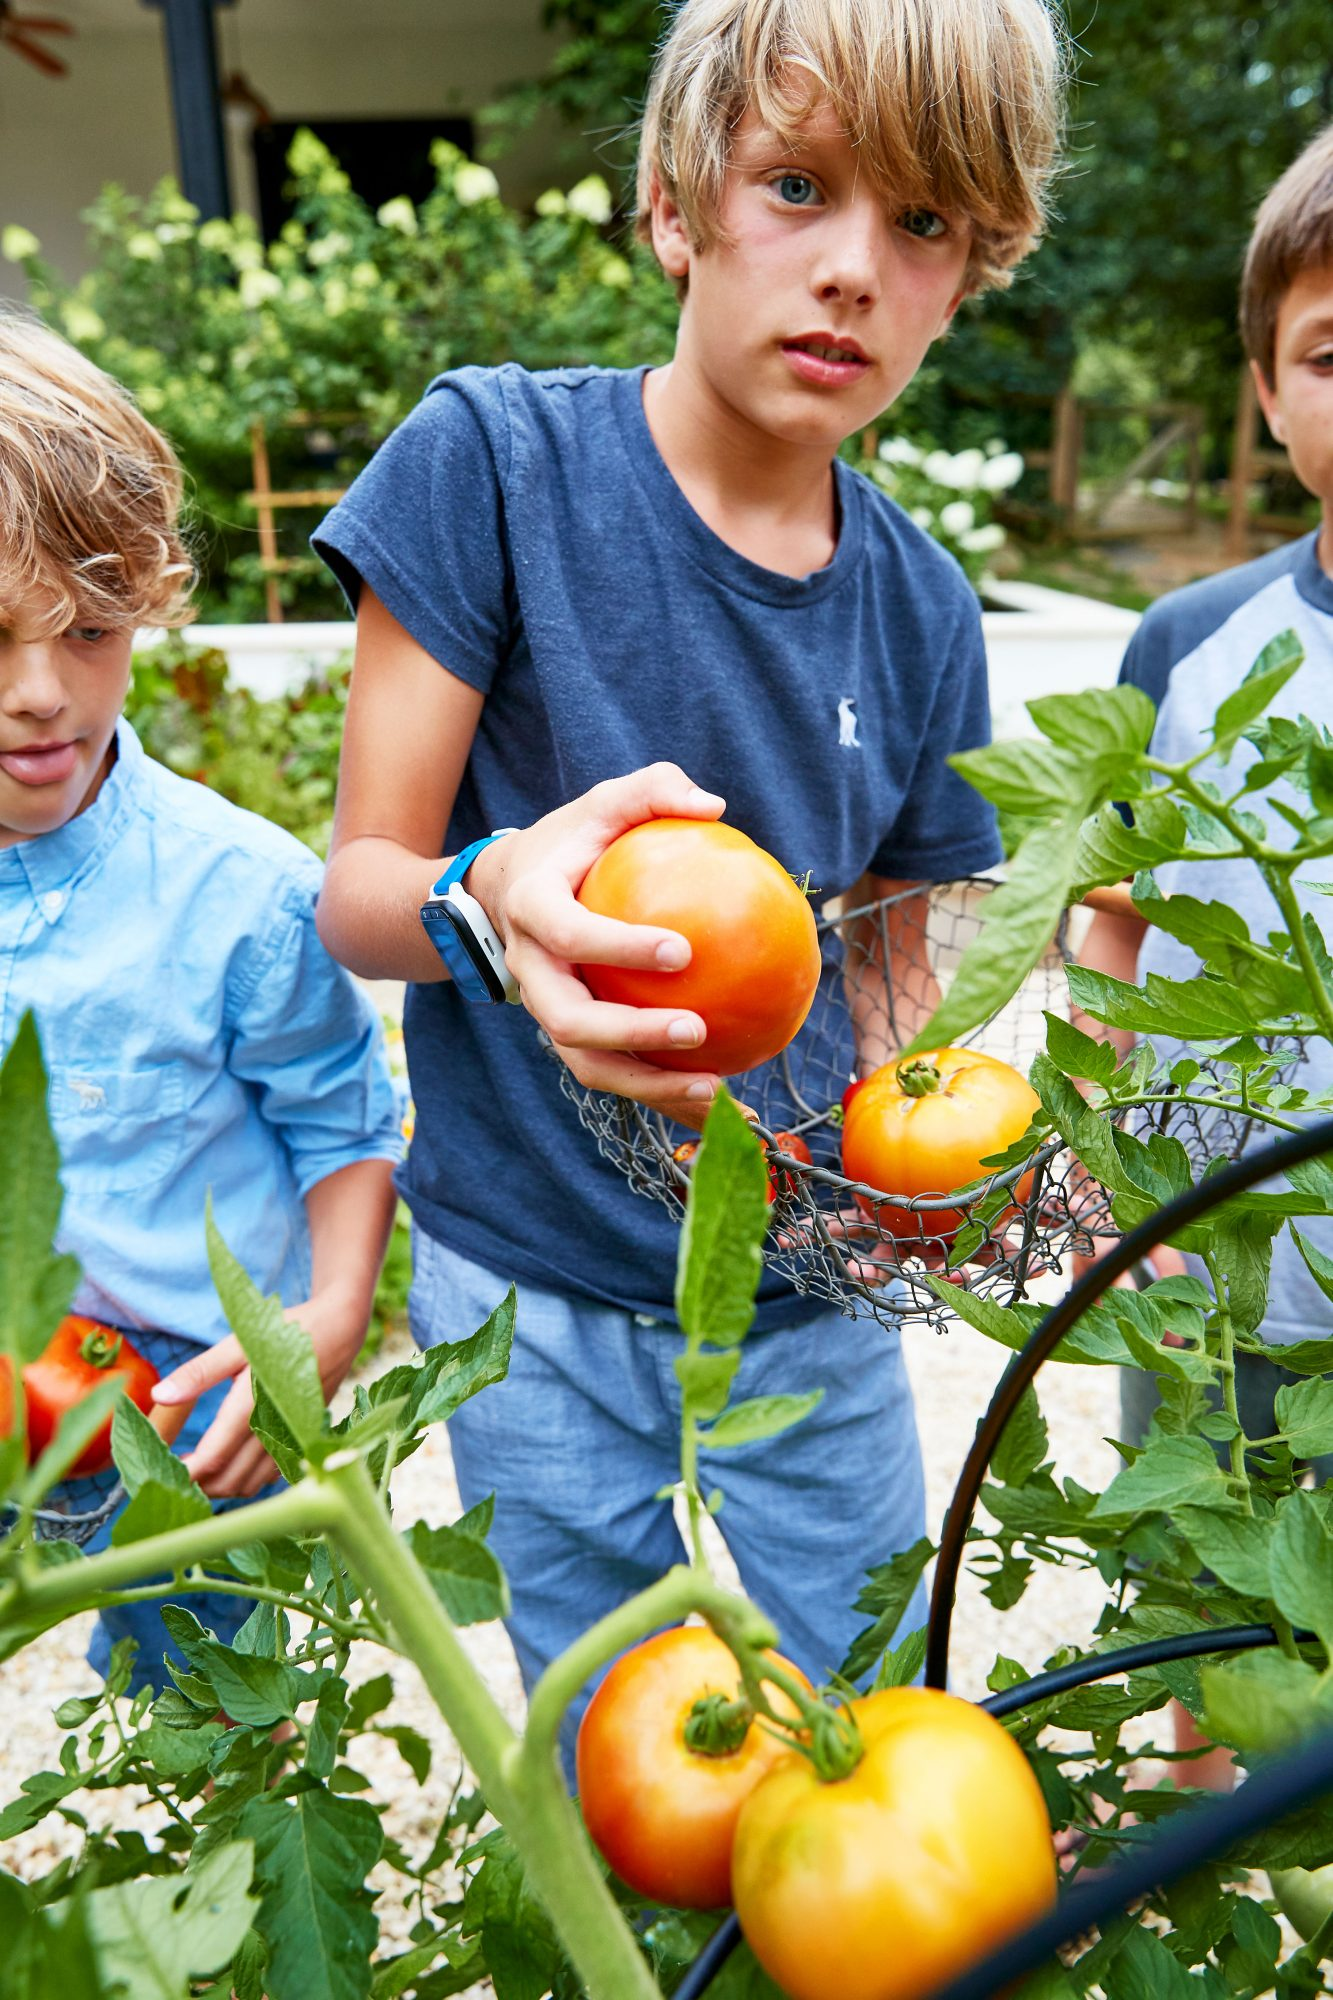 Lauren Liess's Sons Picking Tomatoes in the Vegetable Garden